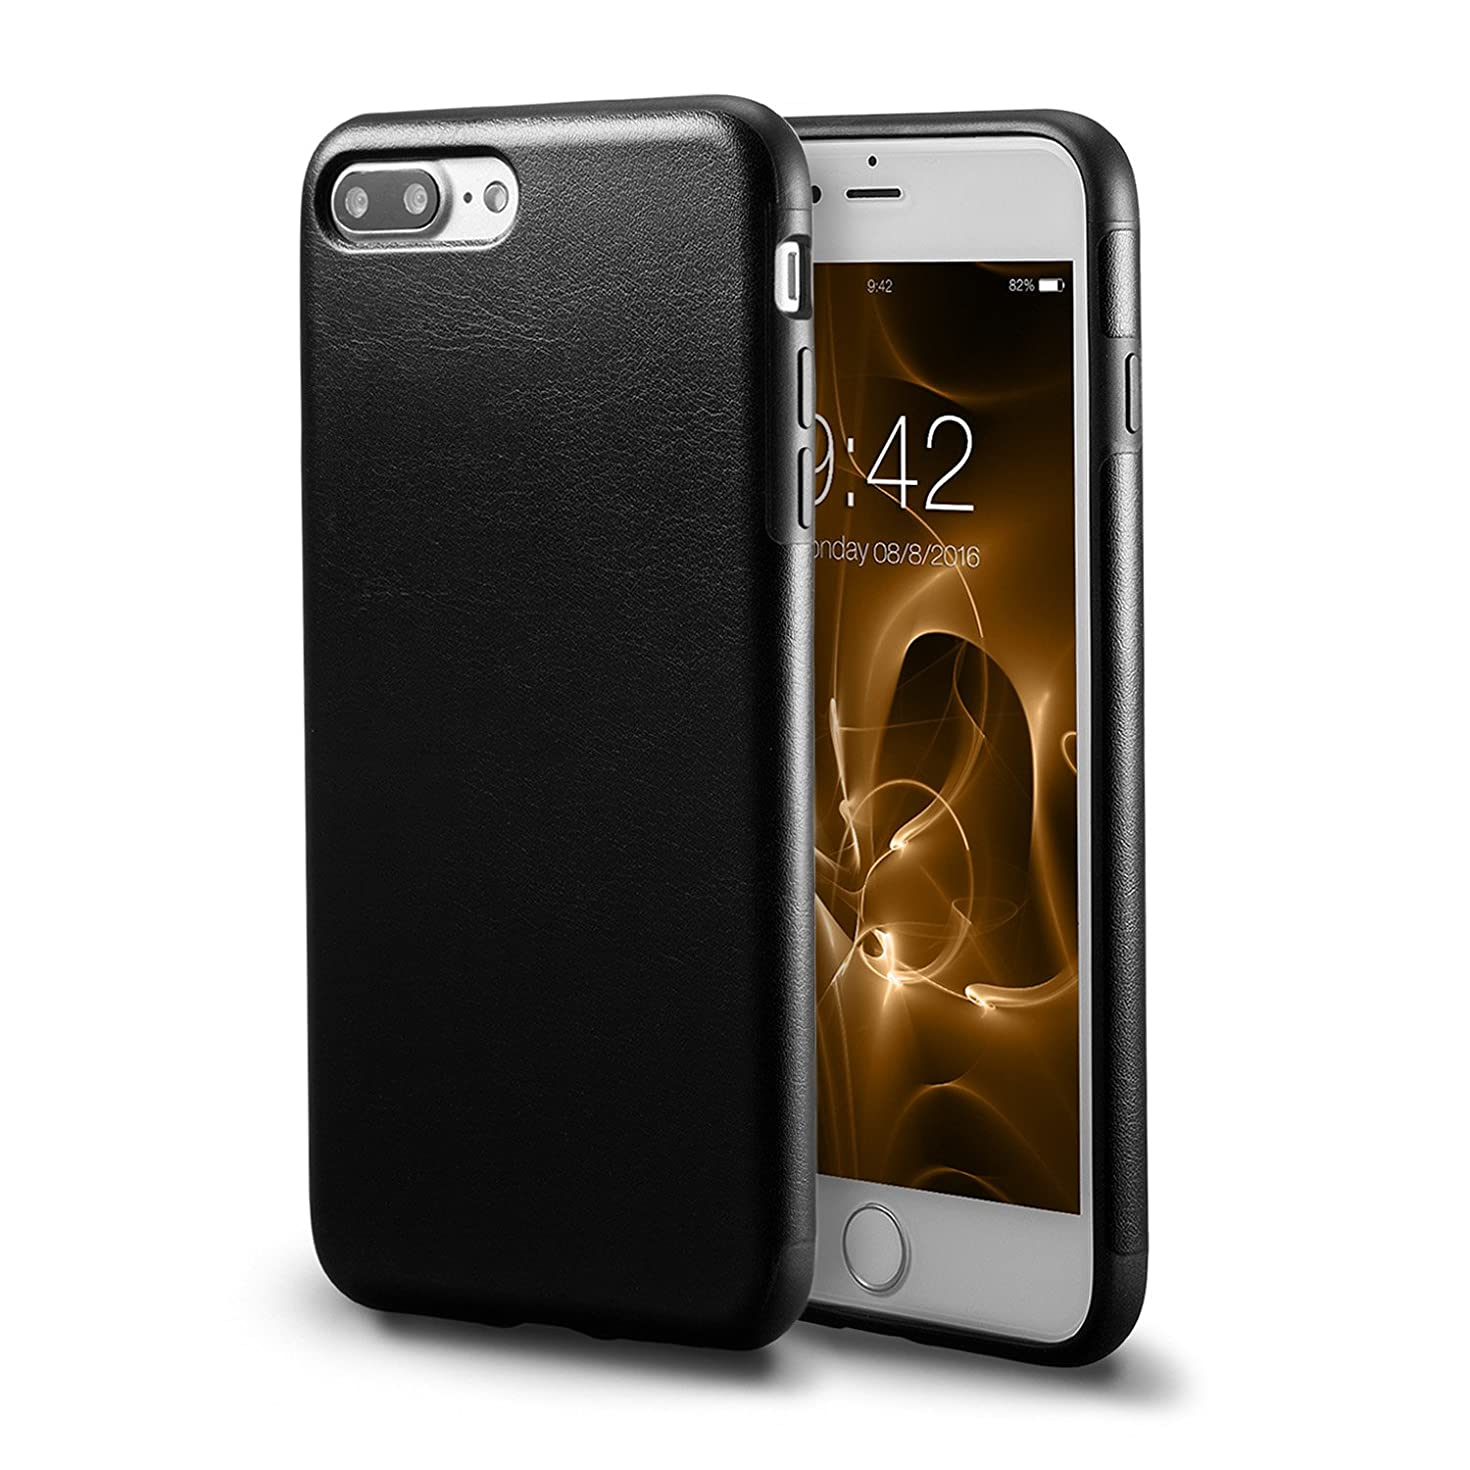 iPhone 7 Plus Black Leather Case/iPhone 8 Plus Black Leather Case, technext020 Ultra Slim Fit Artificial PU Synthetic Leather Case Shock Resistance Cover for iPhone 7 Plus/iPhone 8 Plus Black